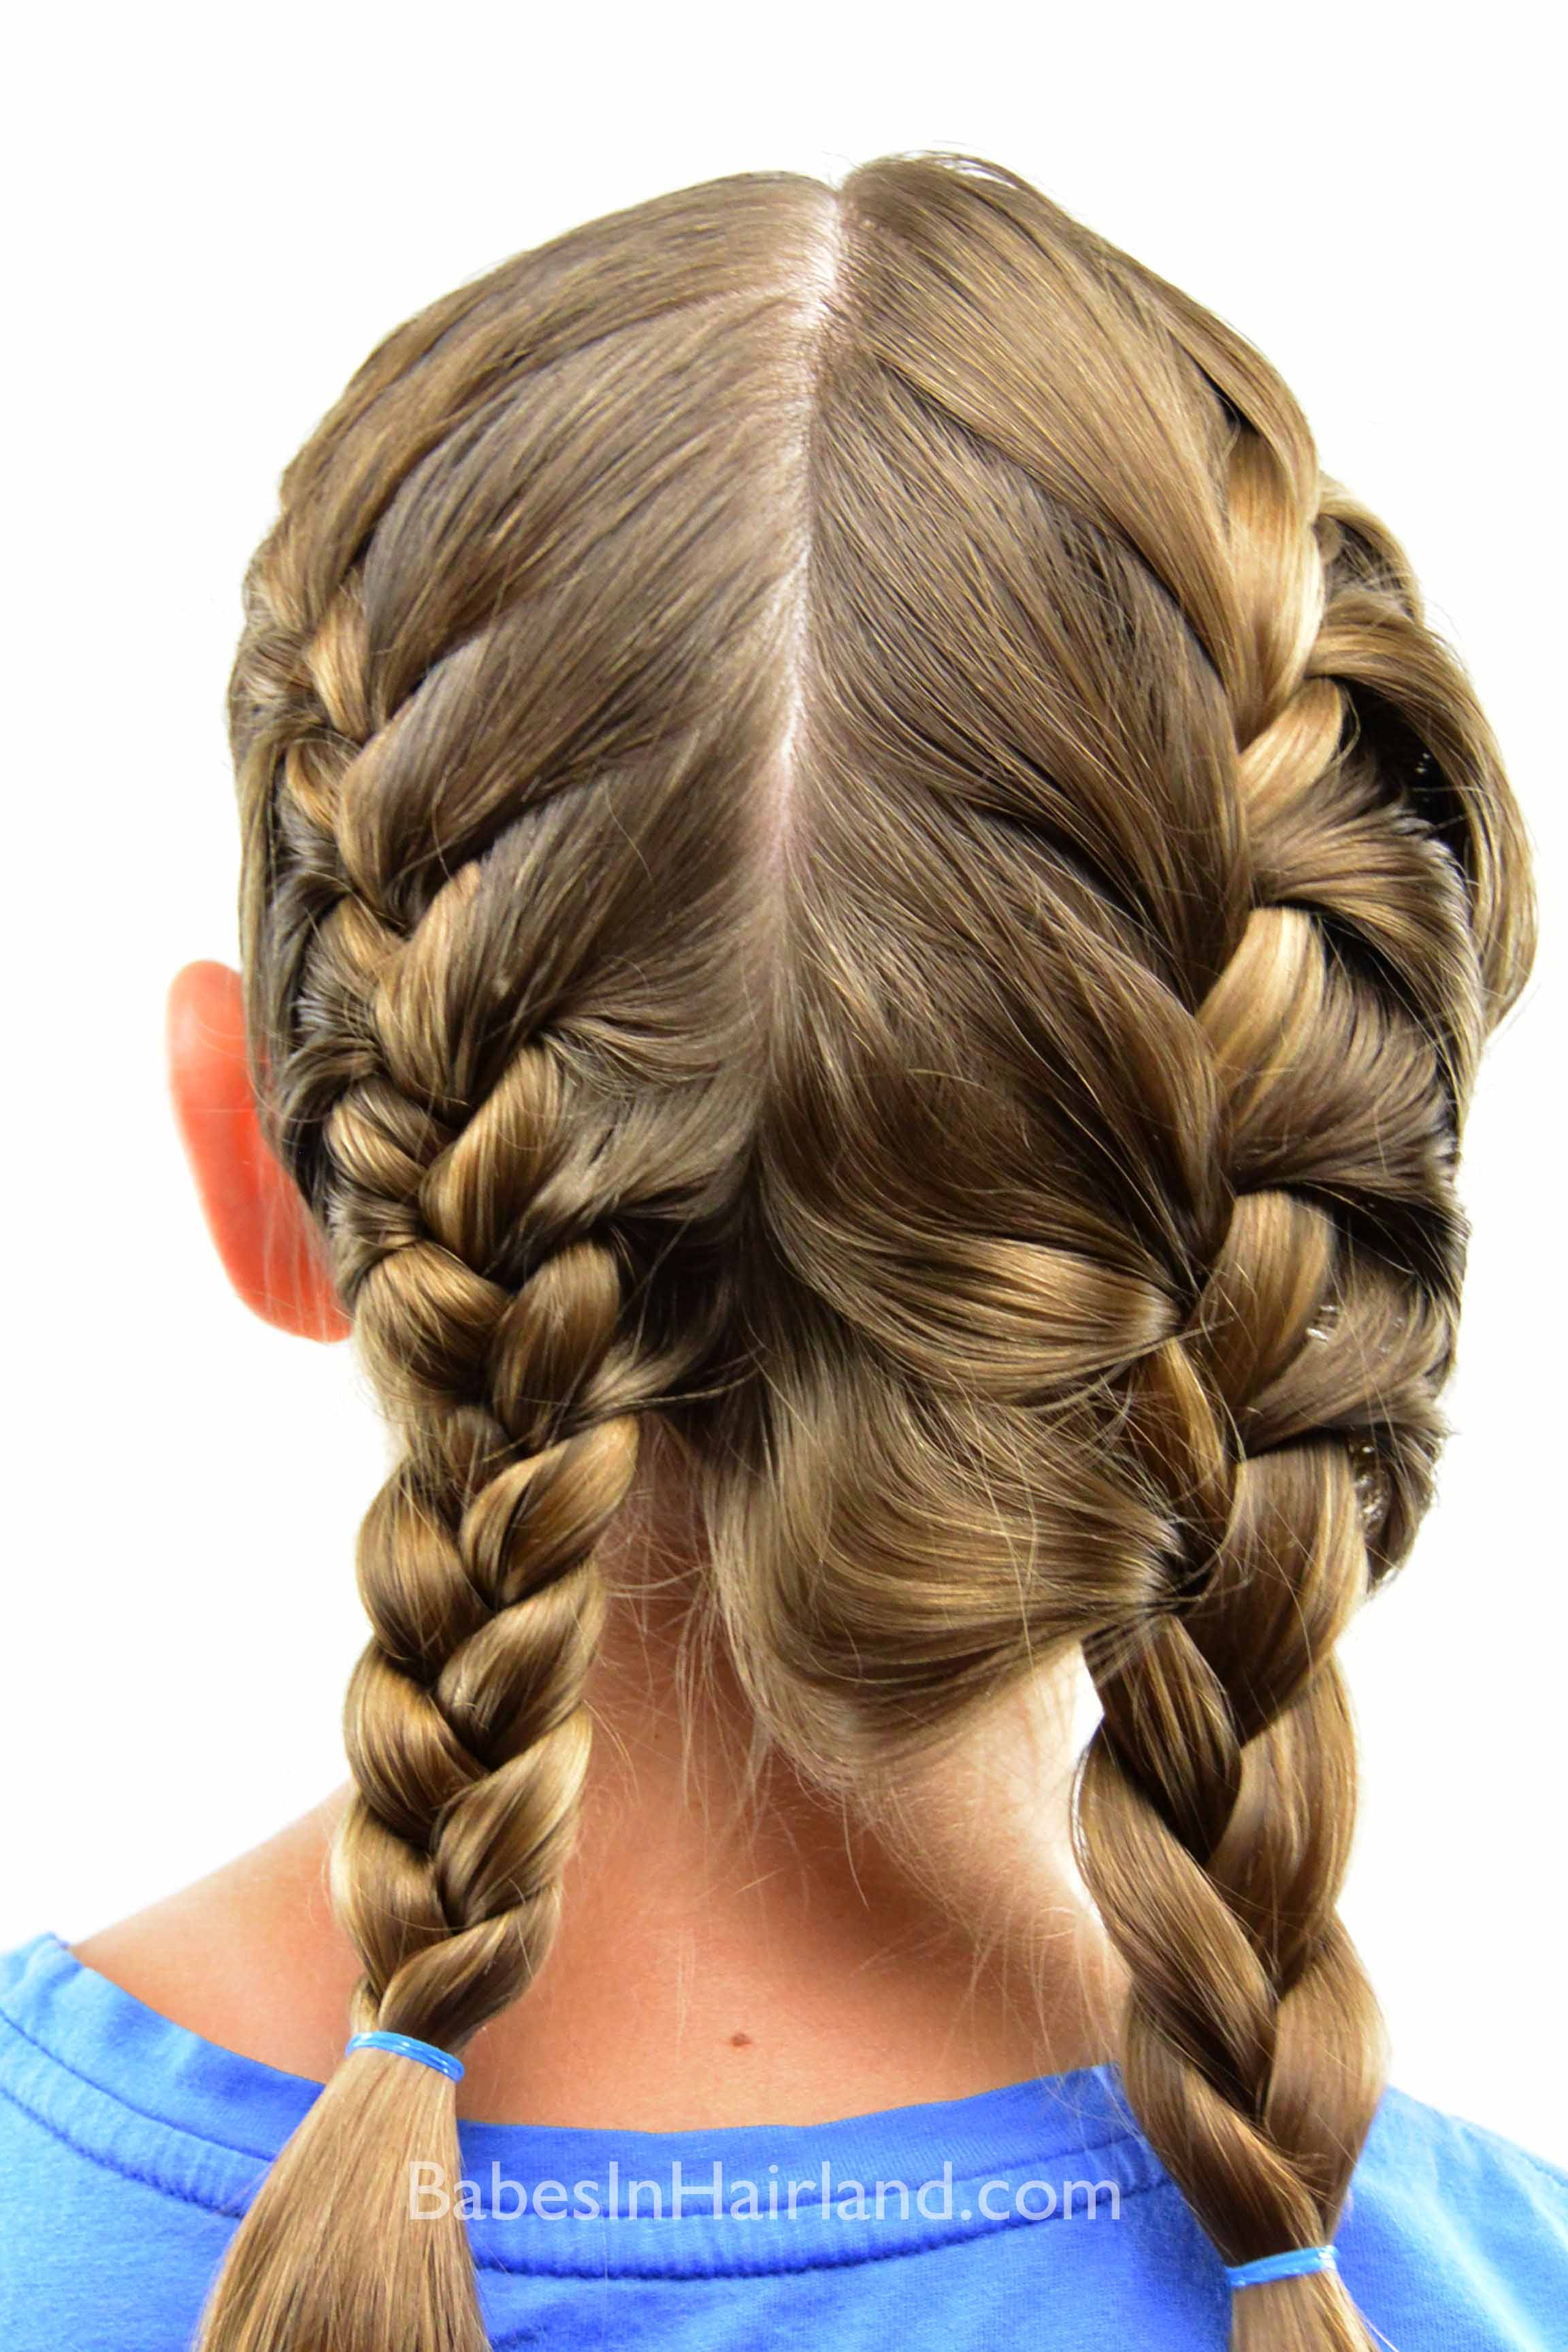 Awe Inspiring How To Get A Tight French Braid Babes In Hairland Short Hairstyles Gunalazisus